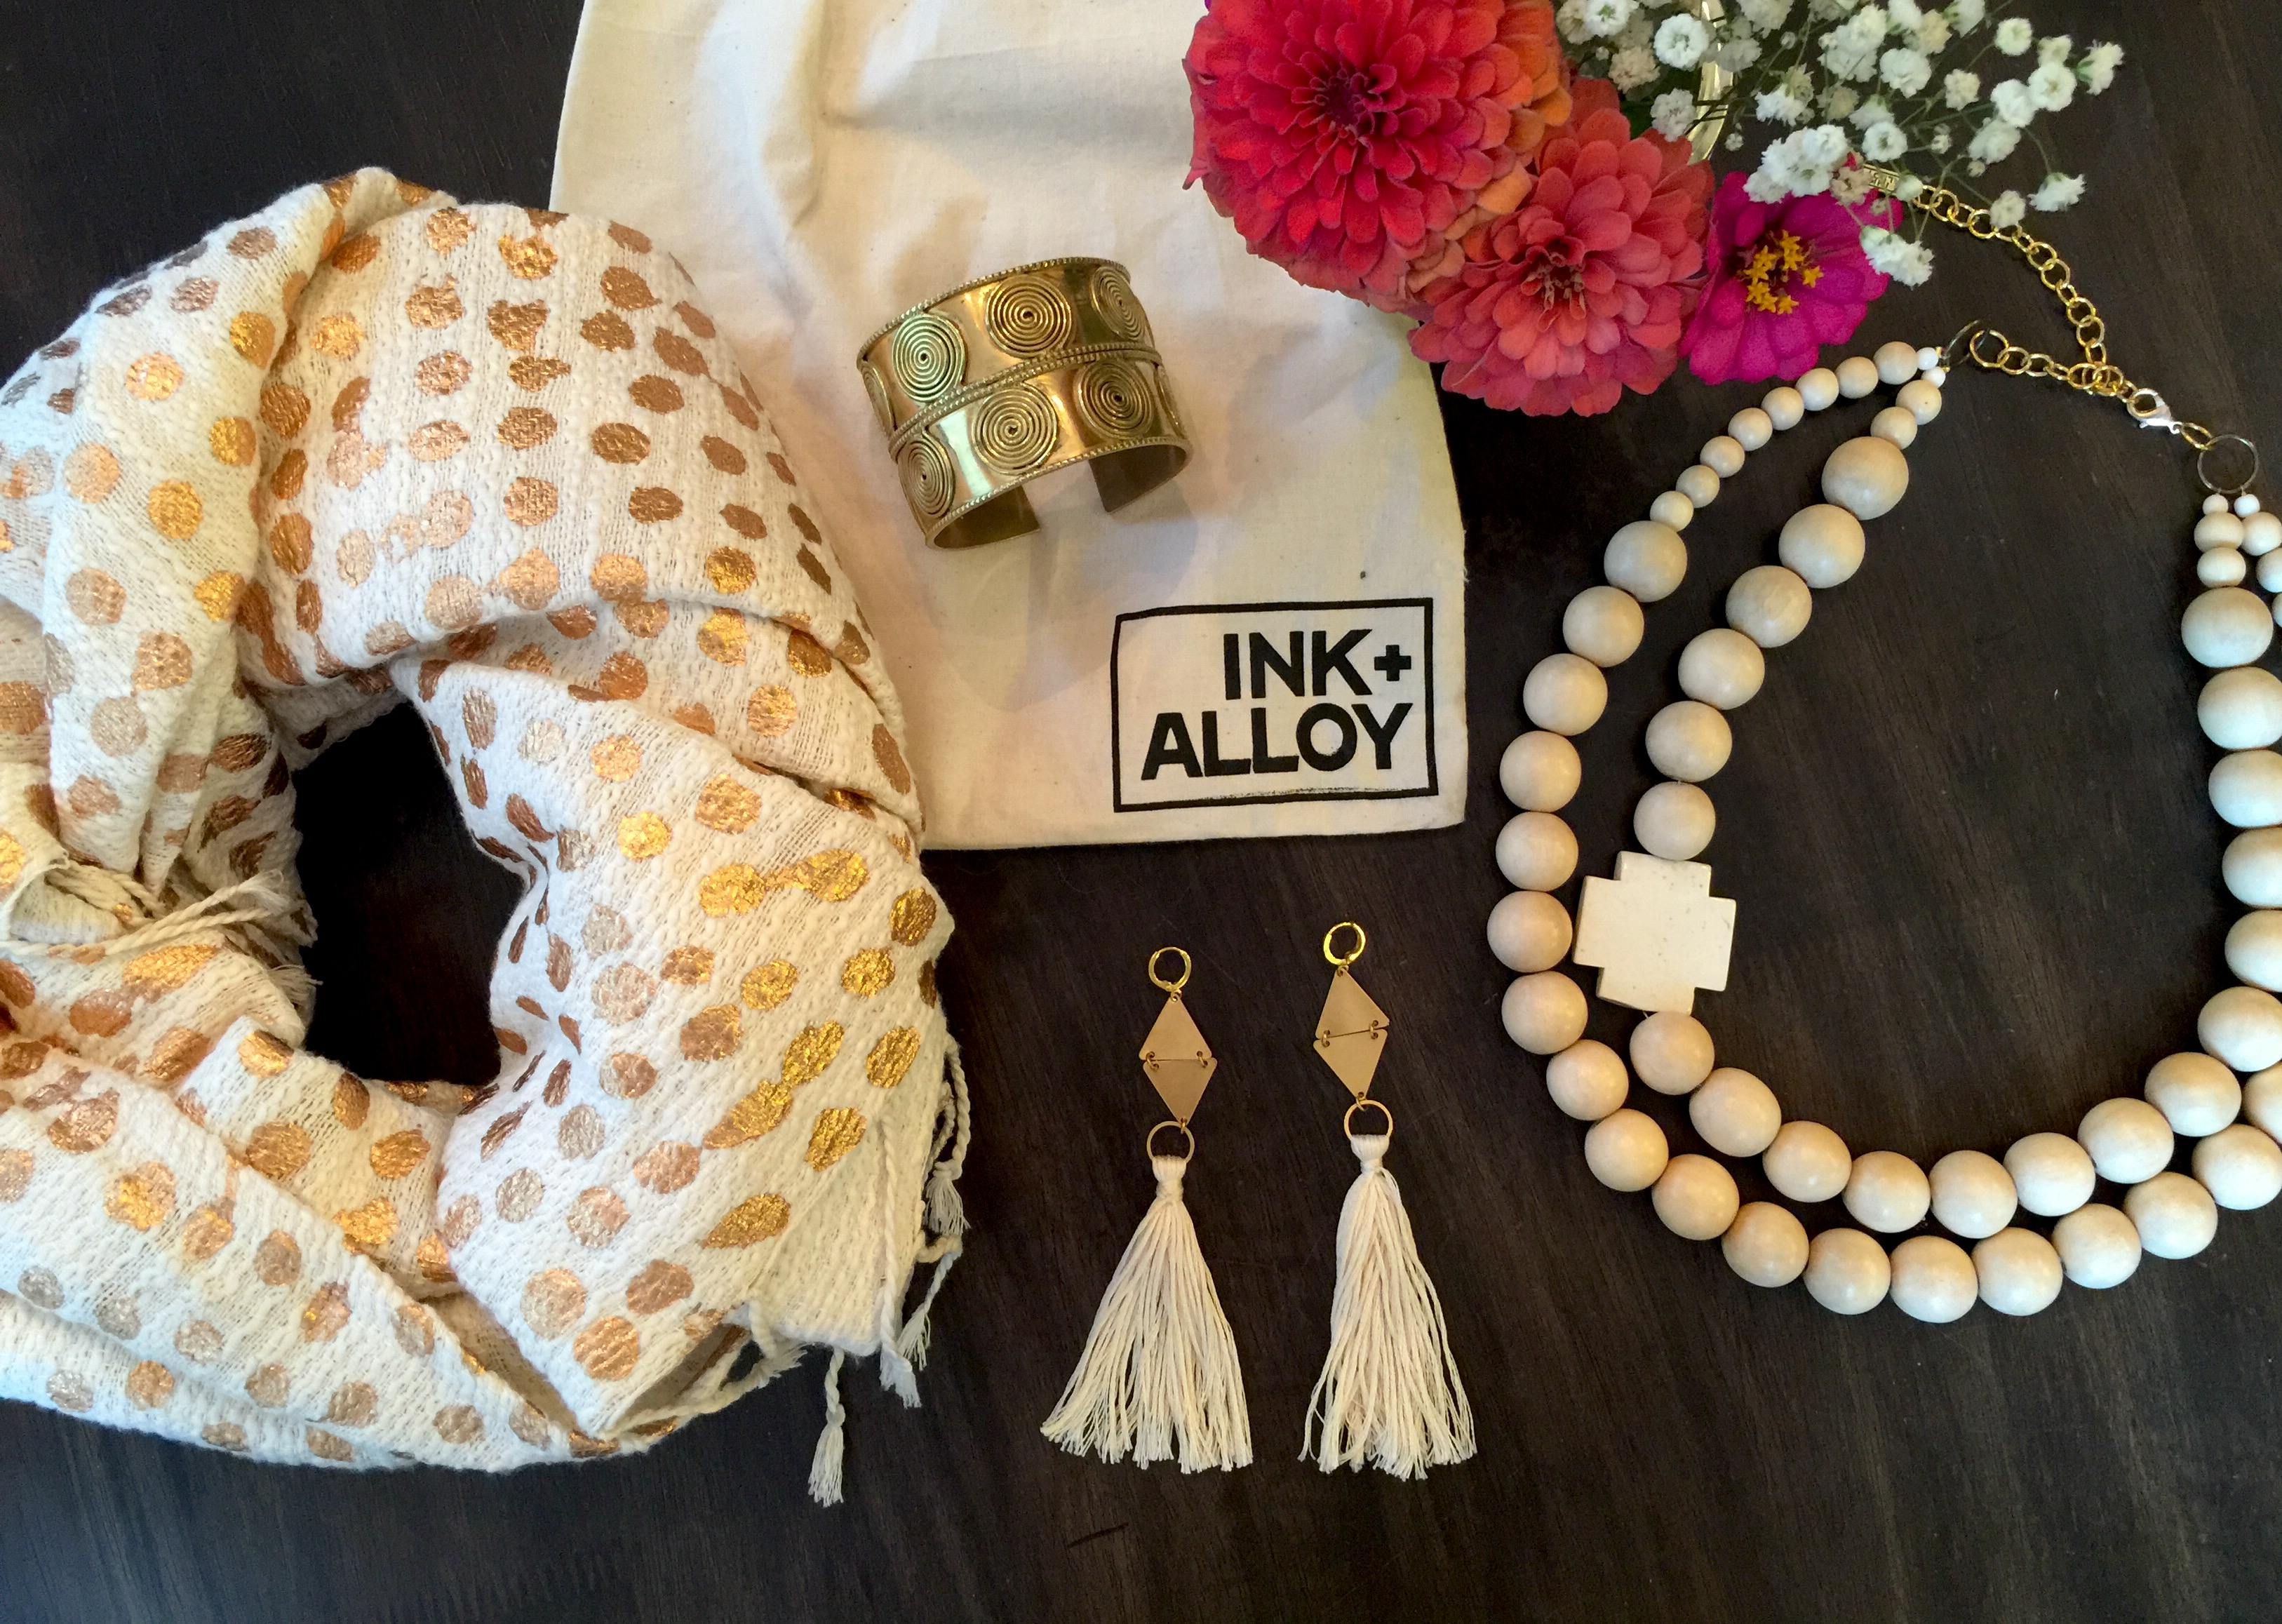 Ink + Alloy :: Accessories With A Beautiful Purpose